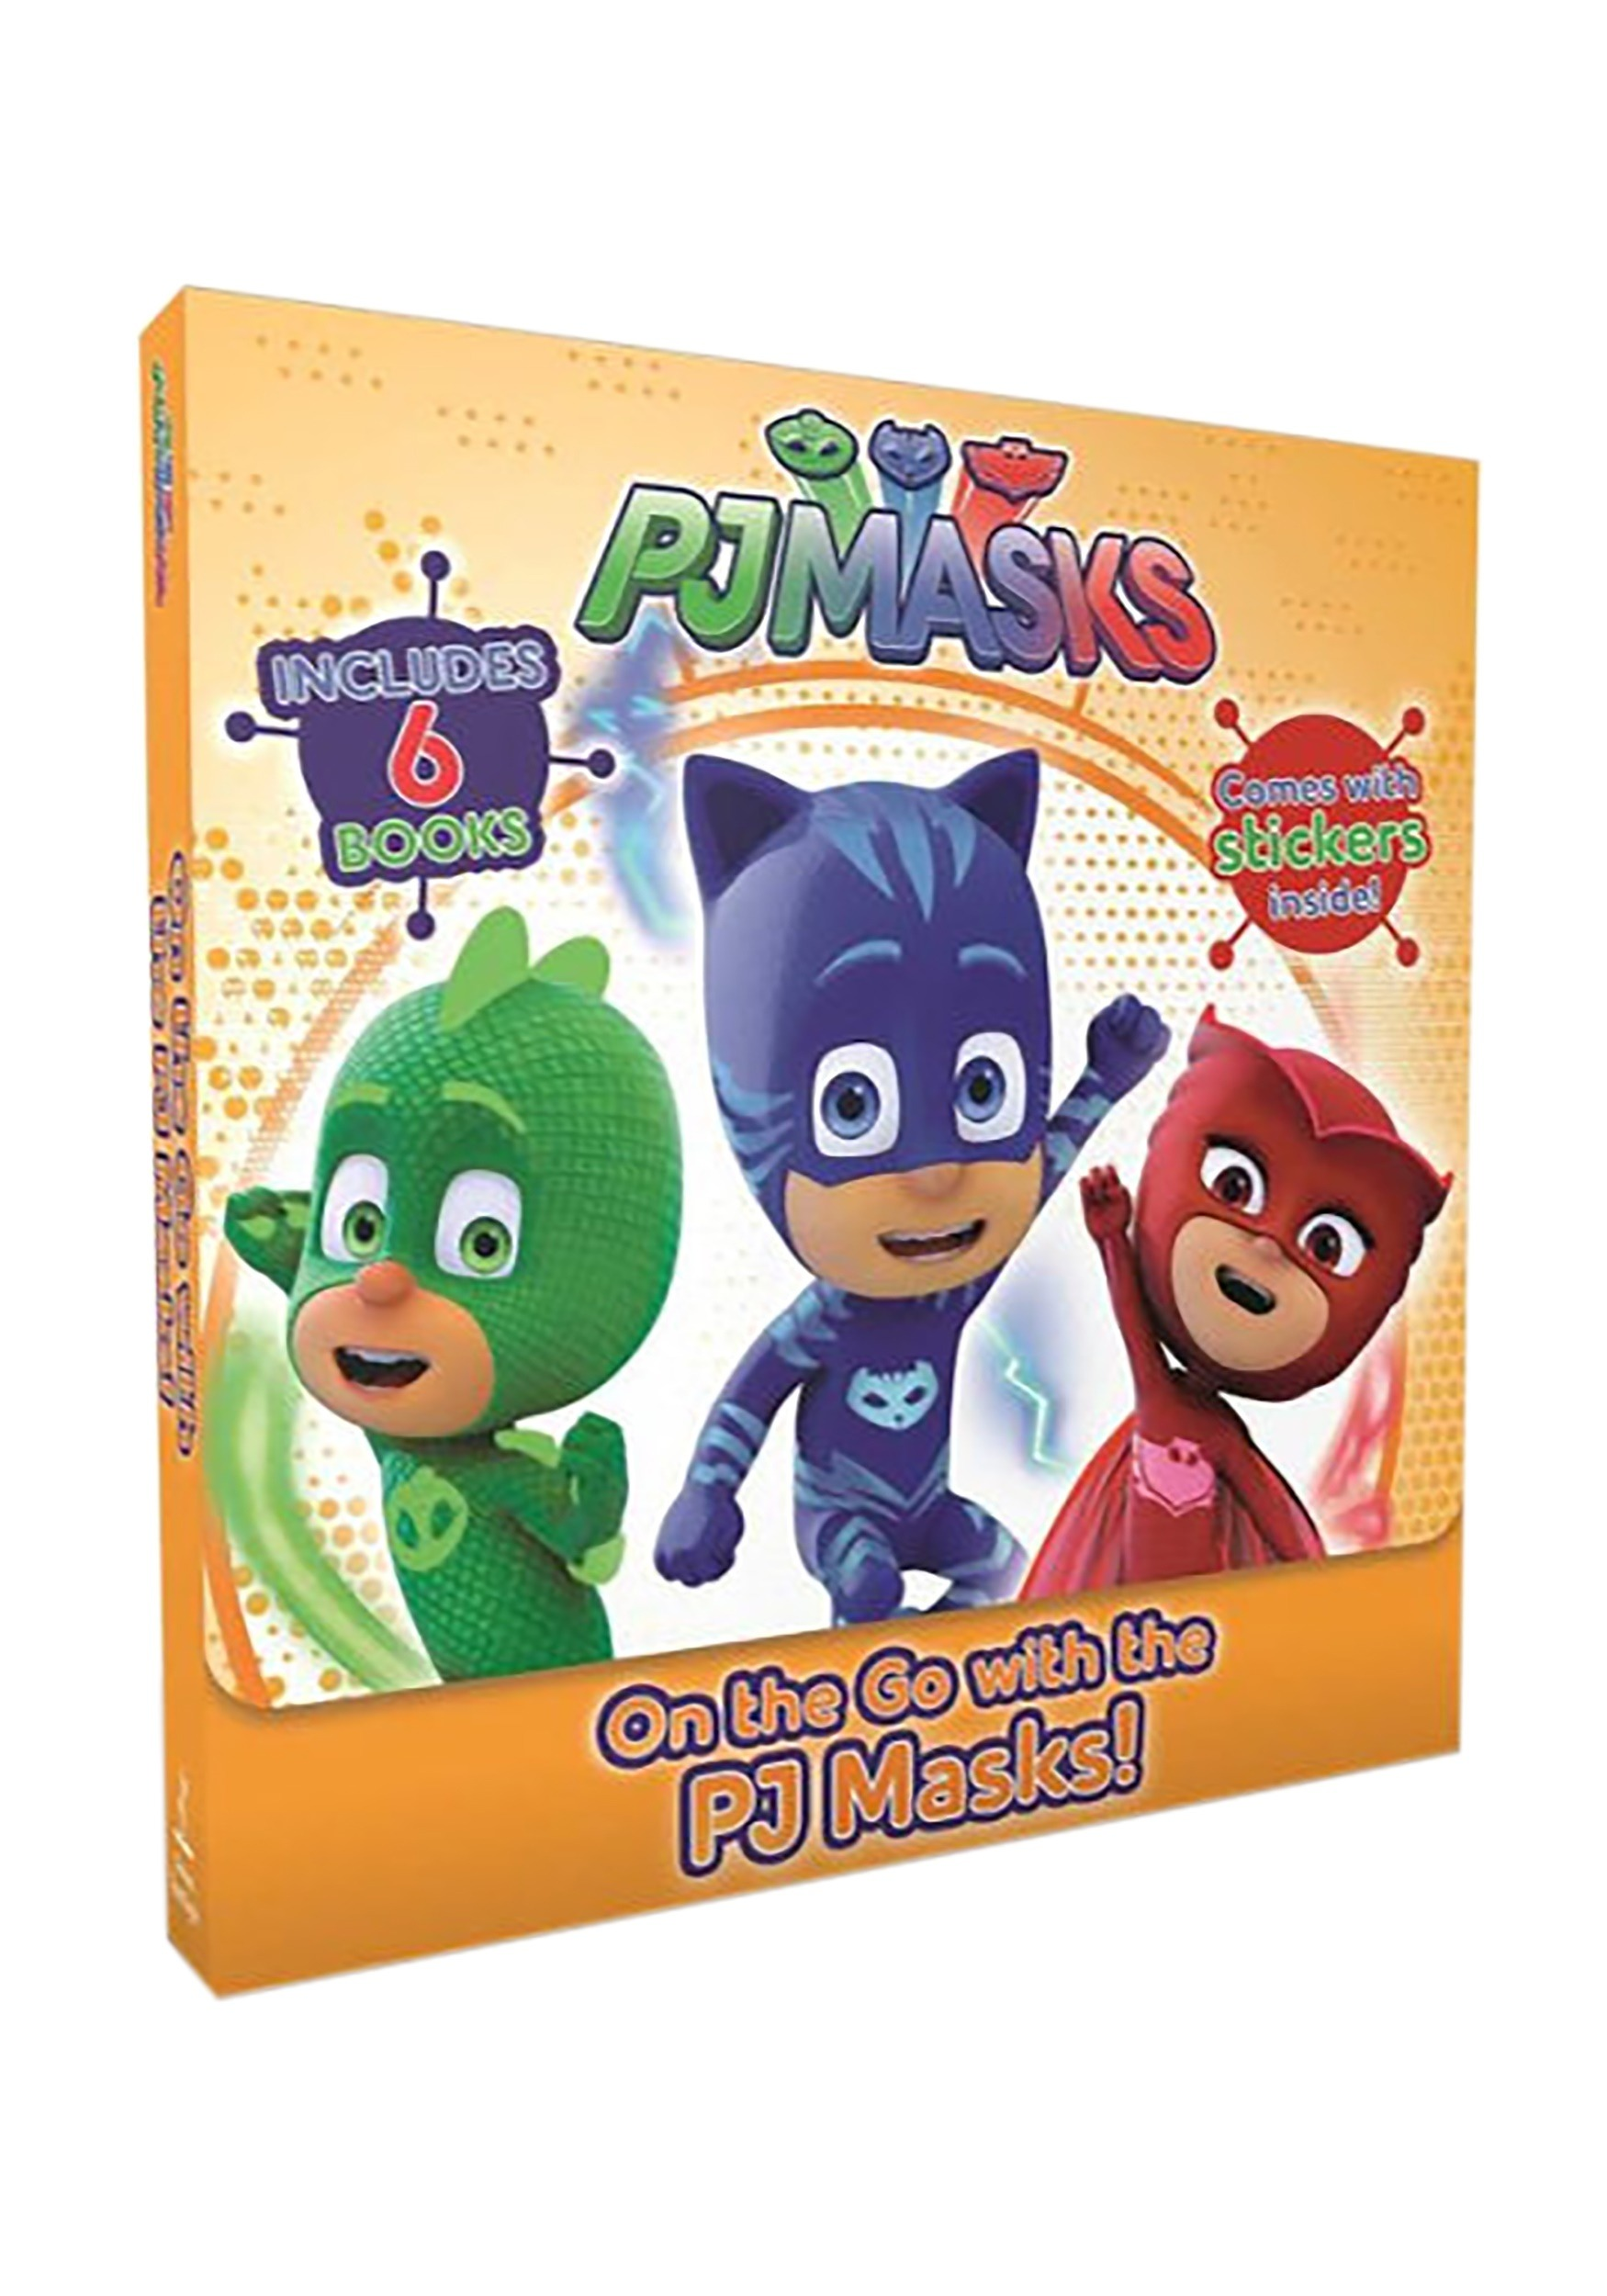 On the Go with the PJ Masks! Box Set